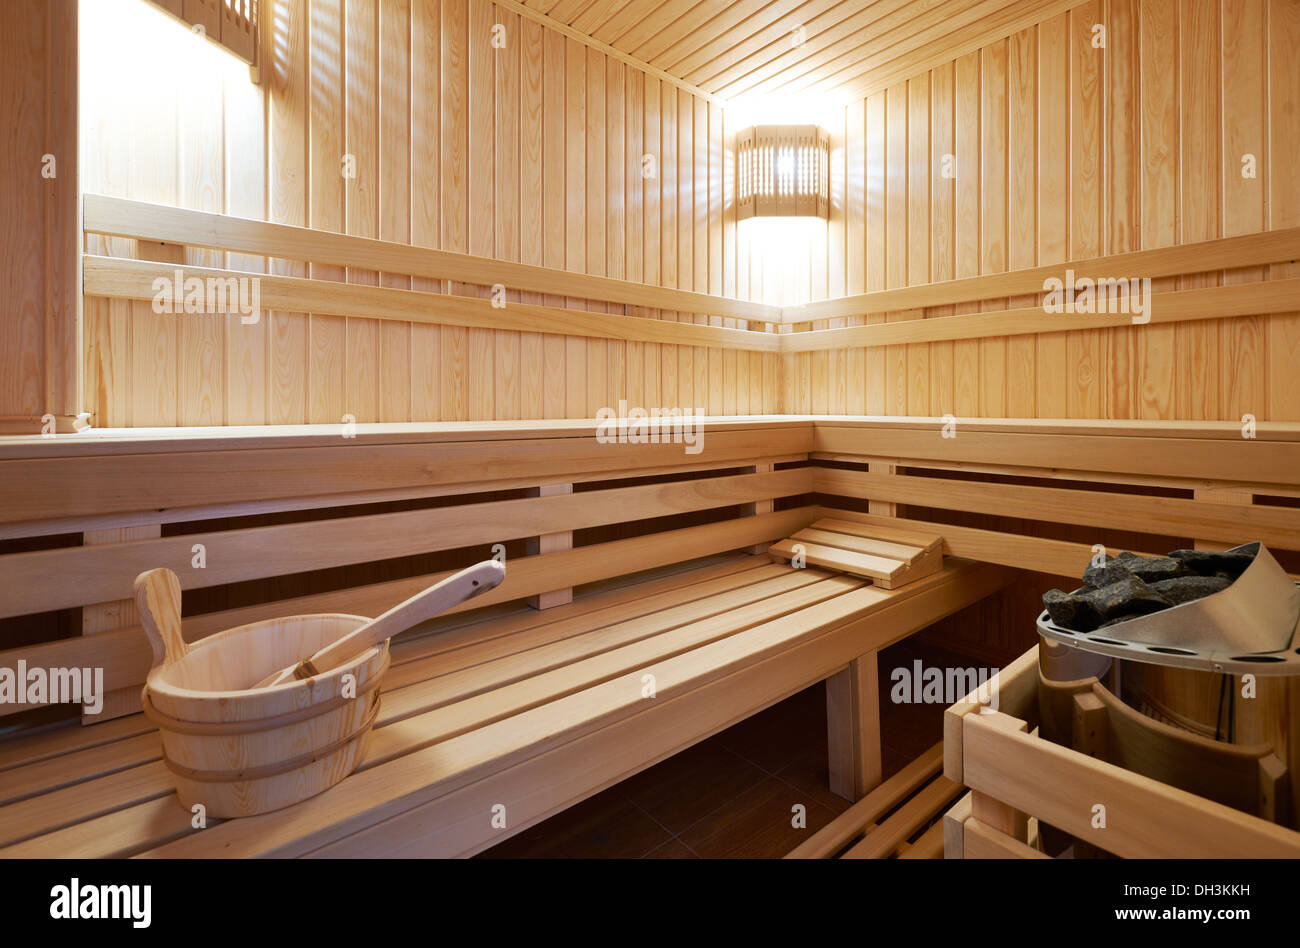 New Finland-style classic wooden sauna - Stock Image